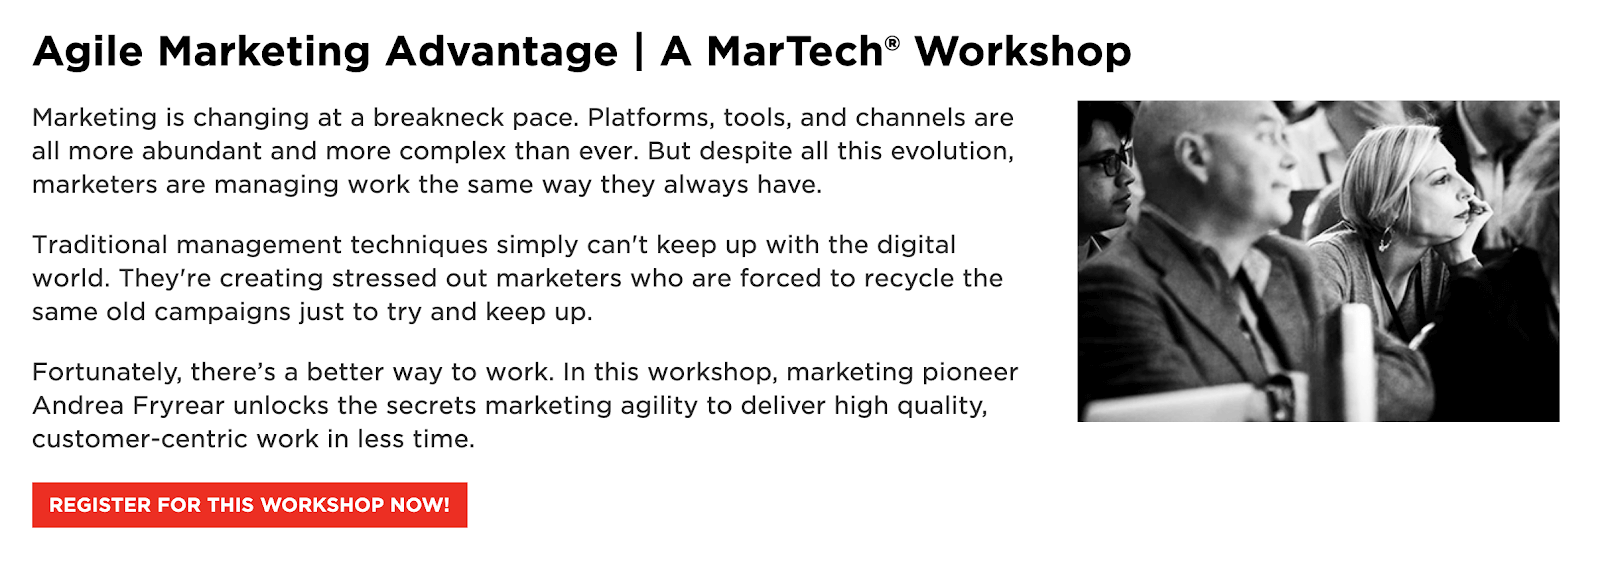 MarTech: Agile Marketing Advantage (Workshop)